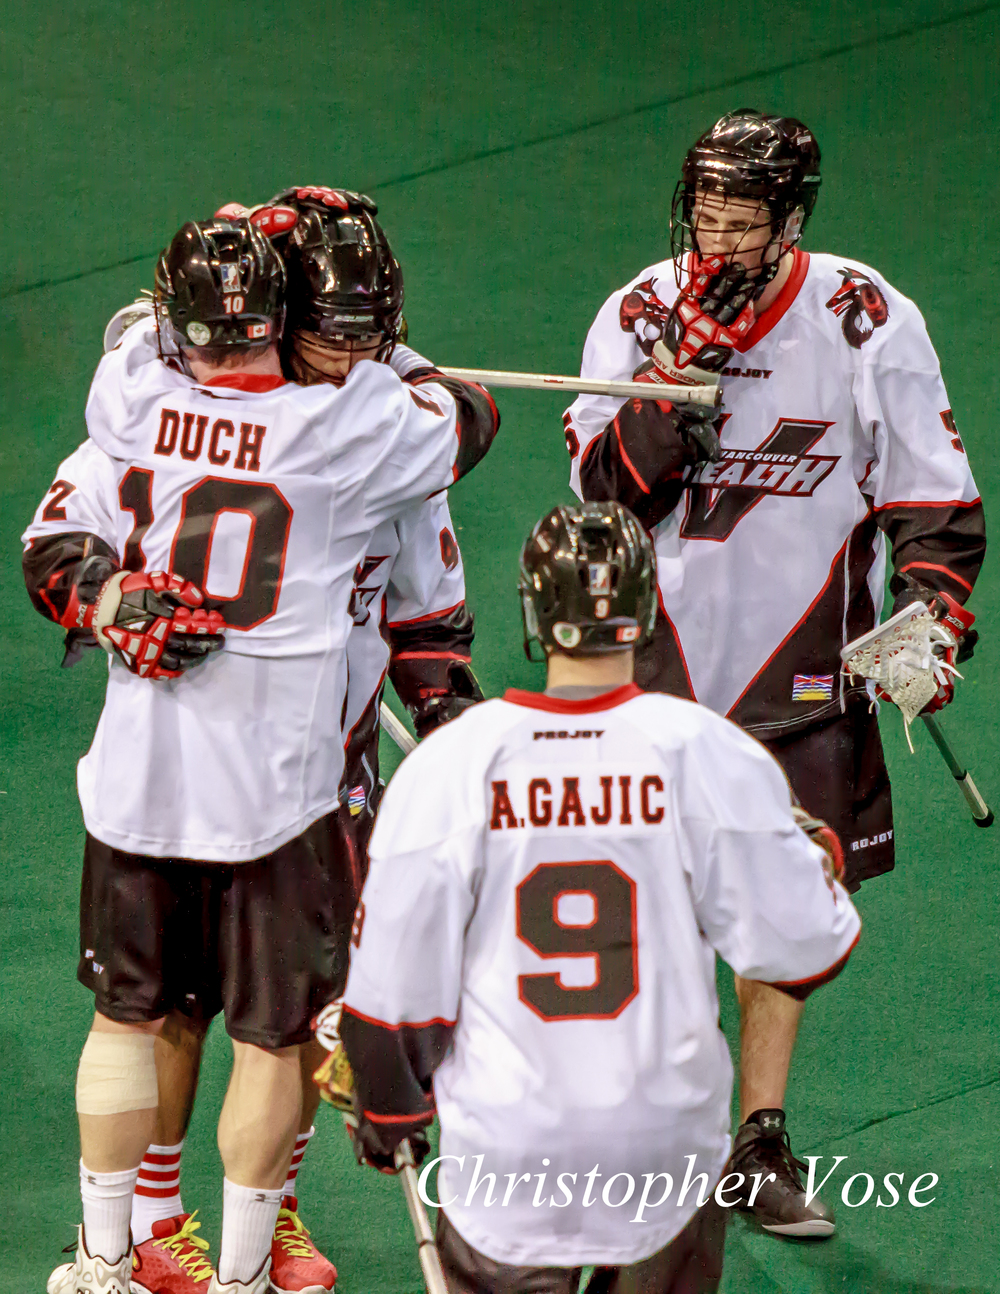 2014-01-11 Lewis Ratcliff Goal Celebration 2.jpg